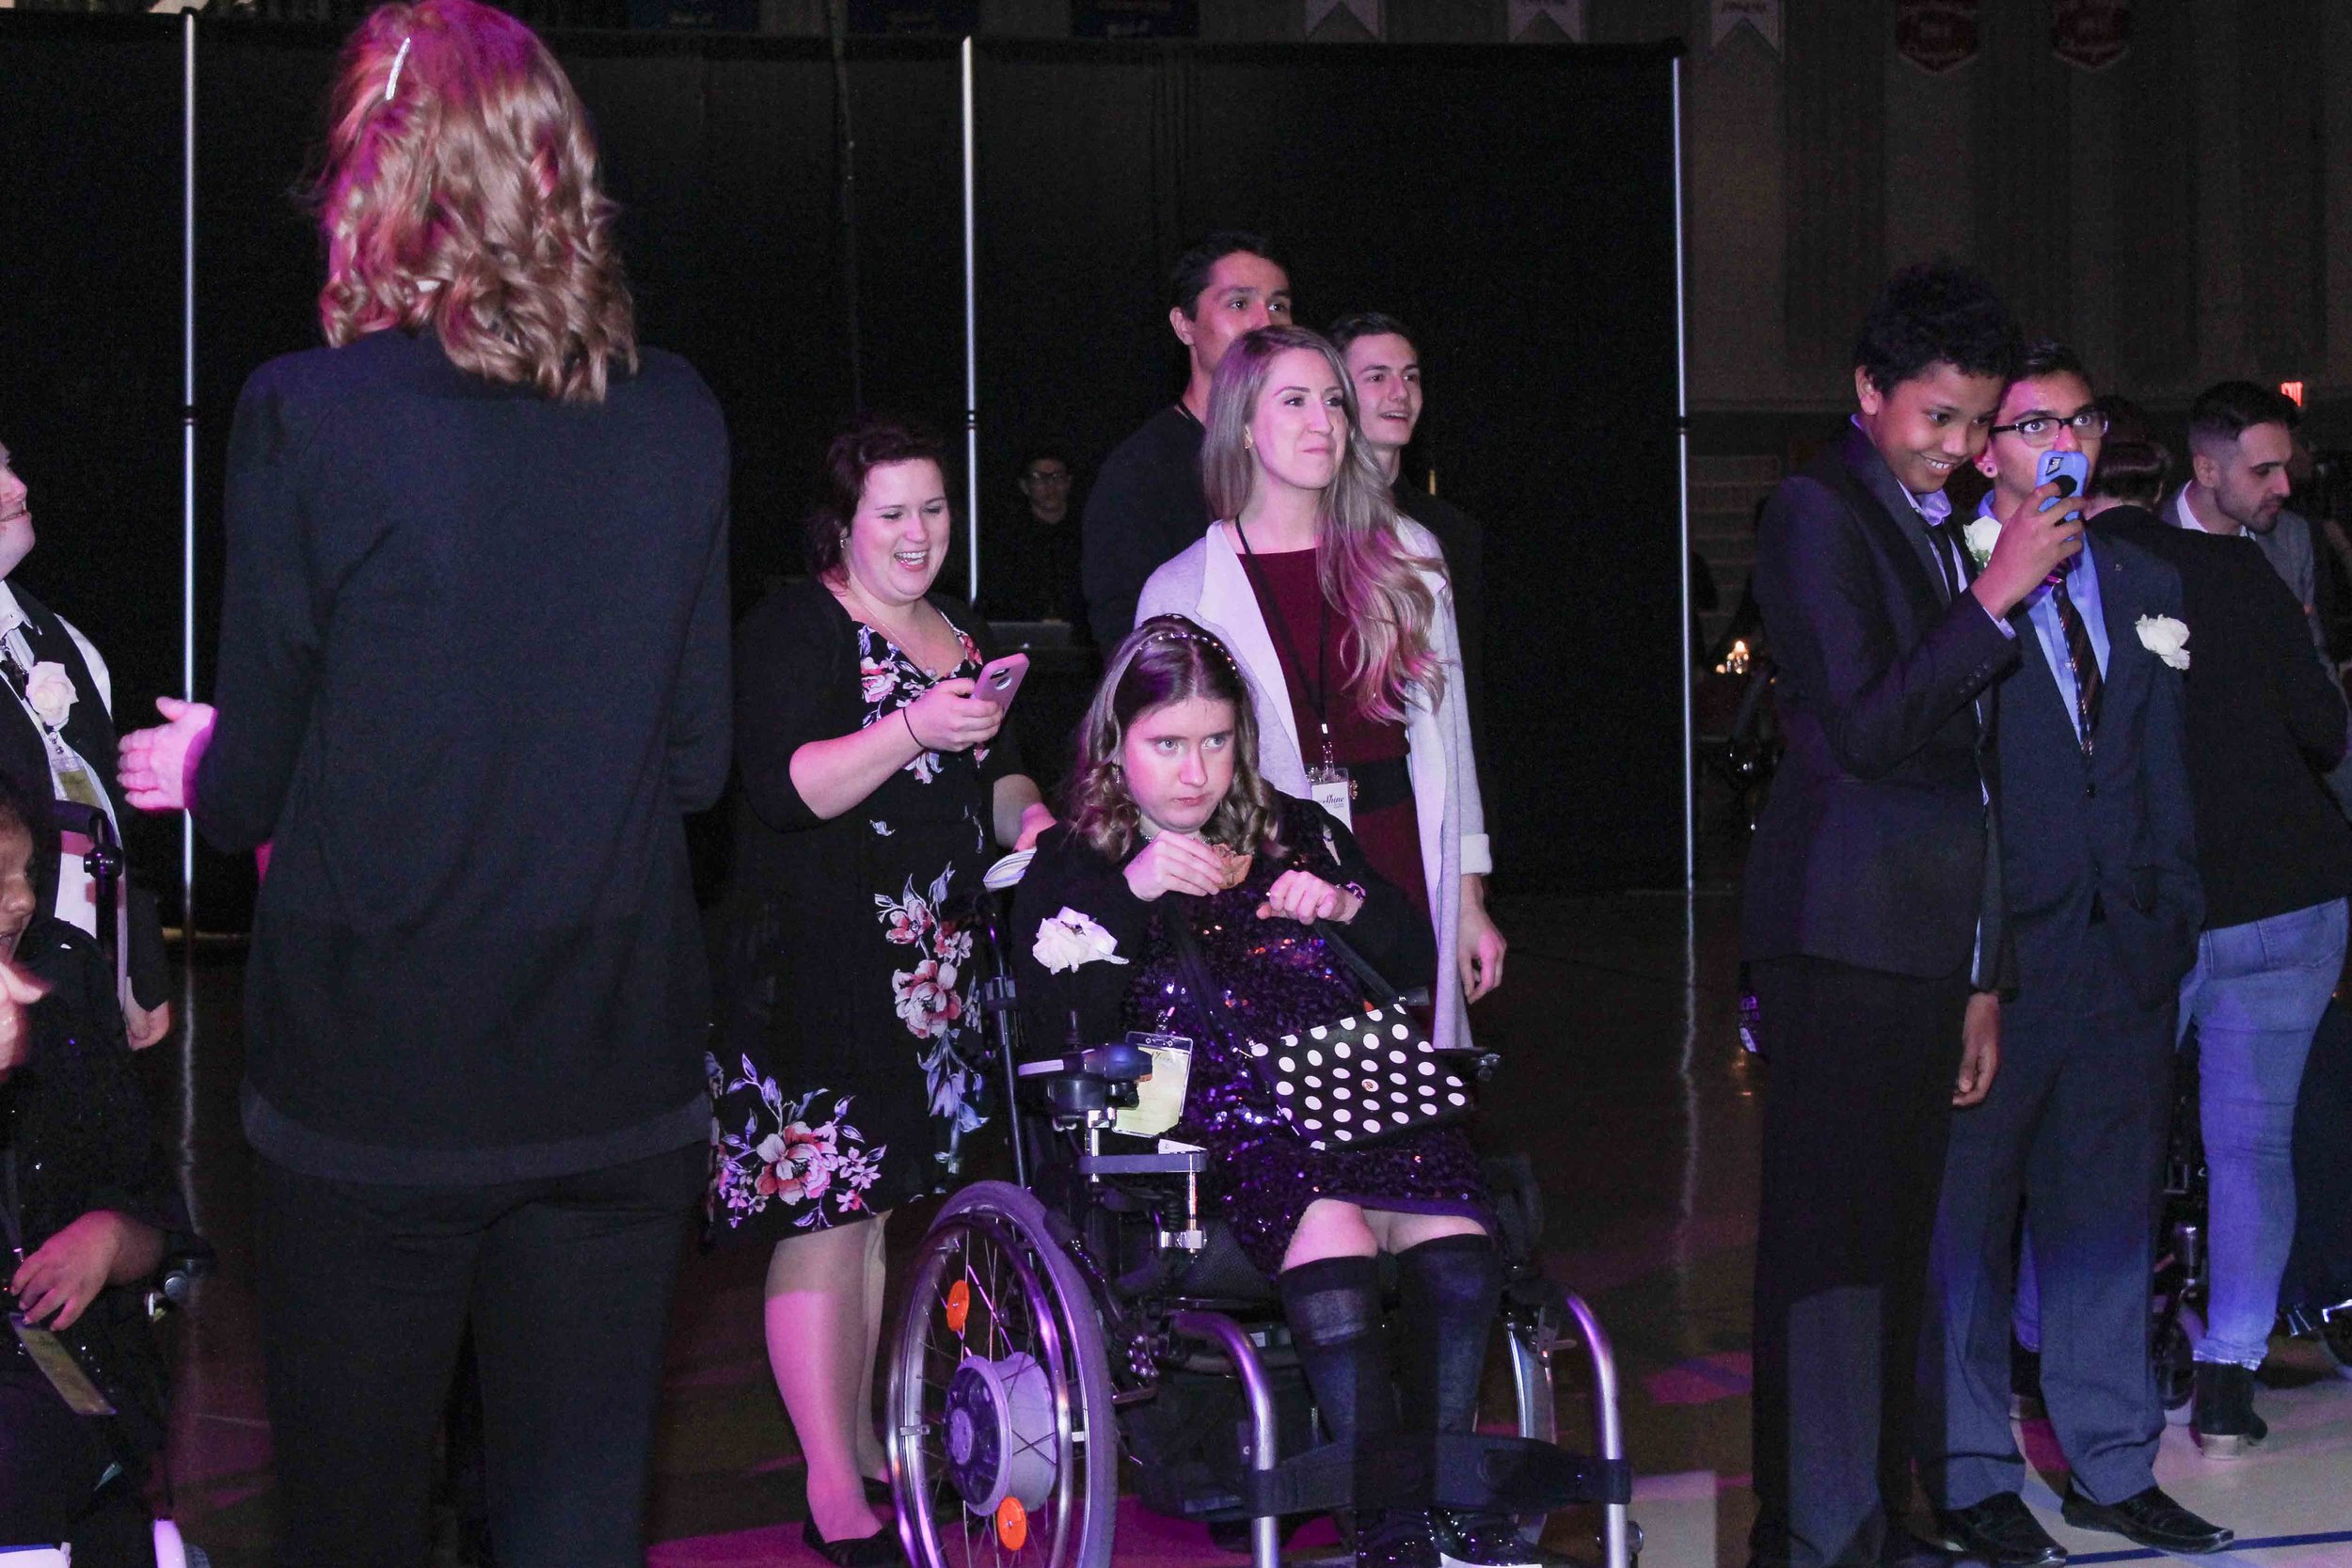 InBetweenDreamsWedding_NightToShine2018_HorizonChurch (282 of 514).jpg